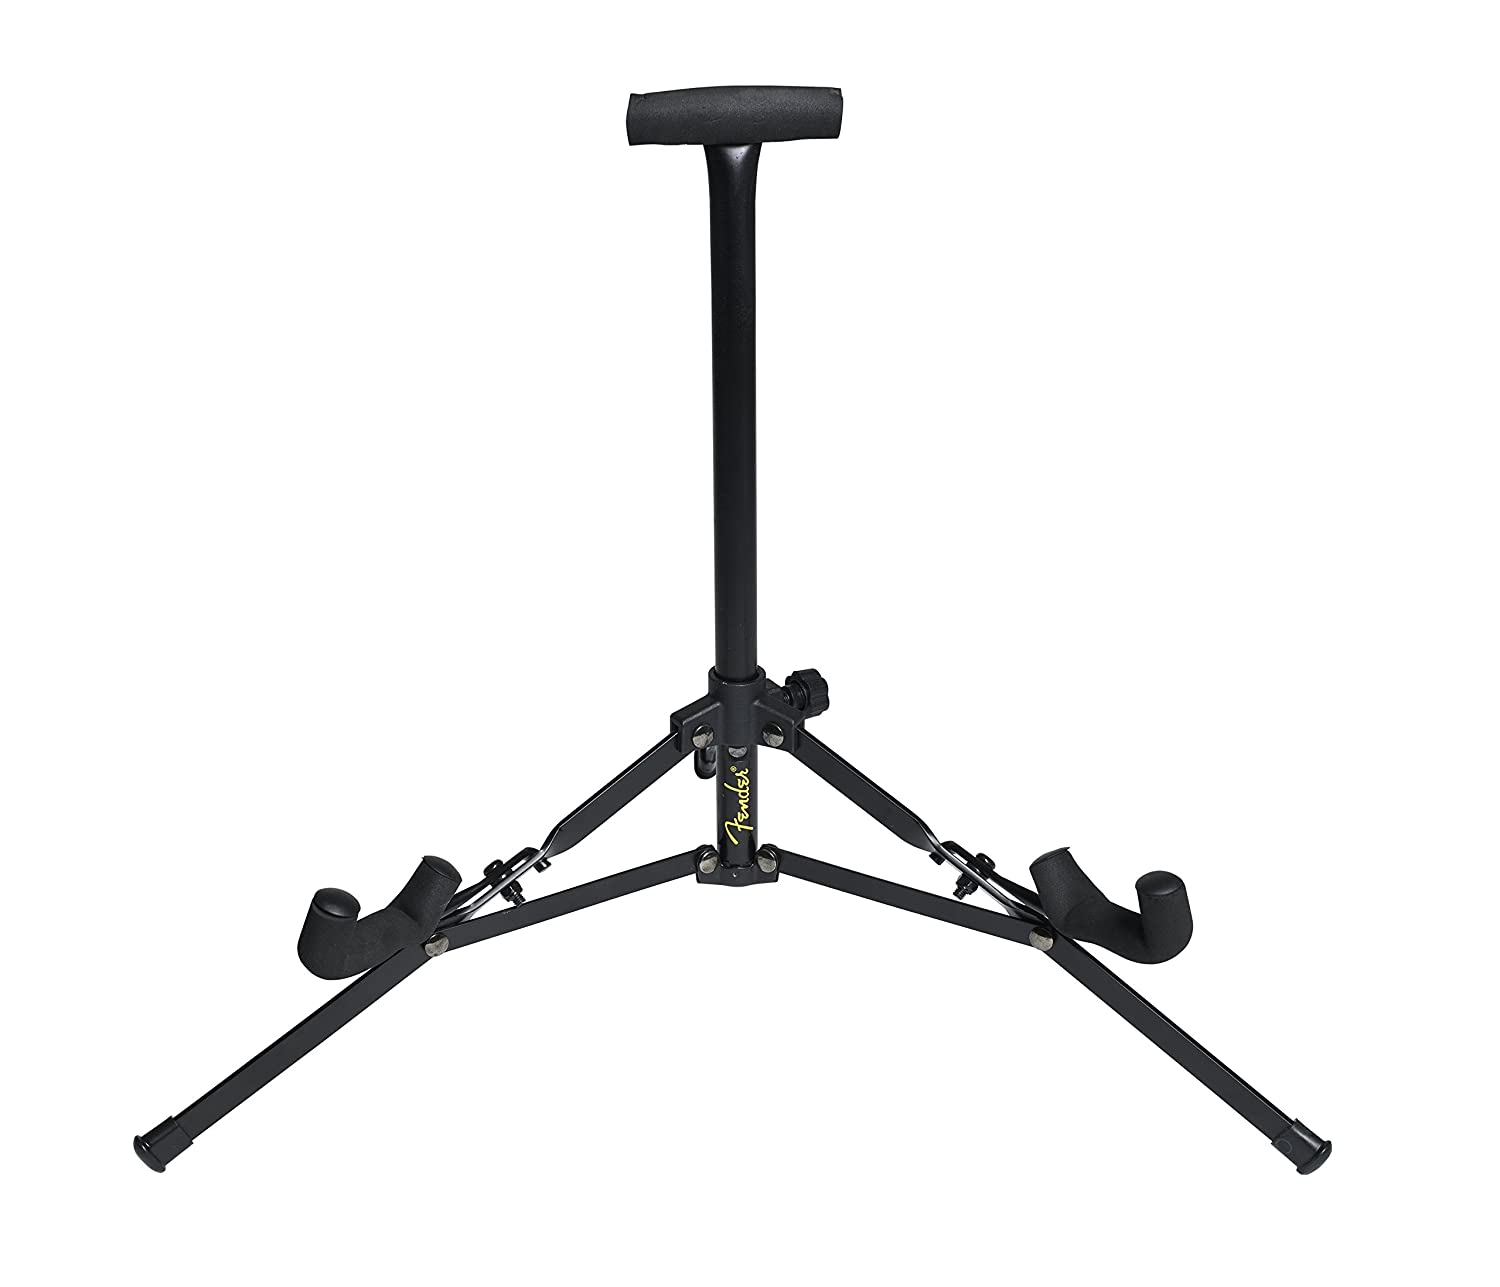 Fender Mini Electric Guitar Stand Fender Musical 099-1811-000